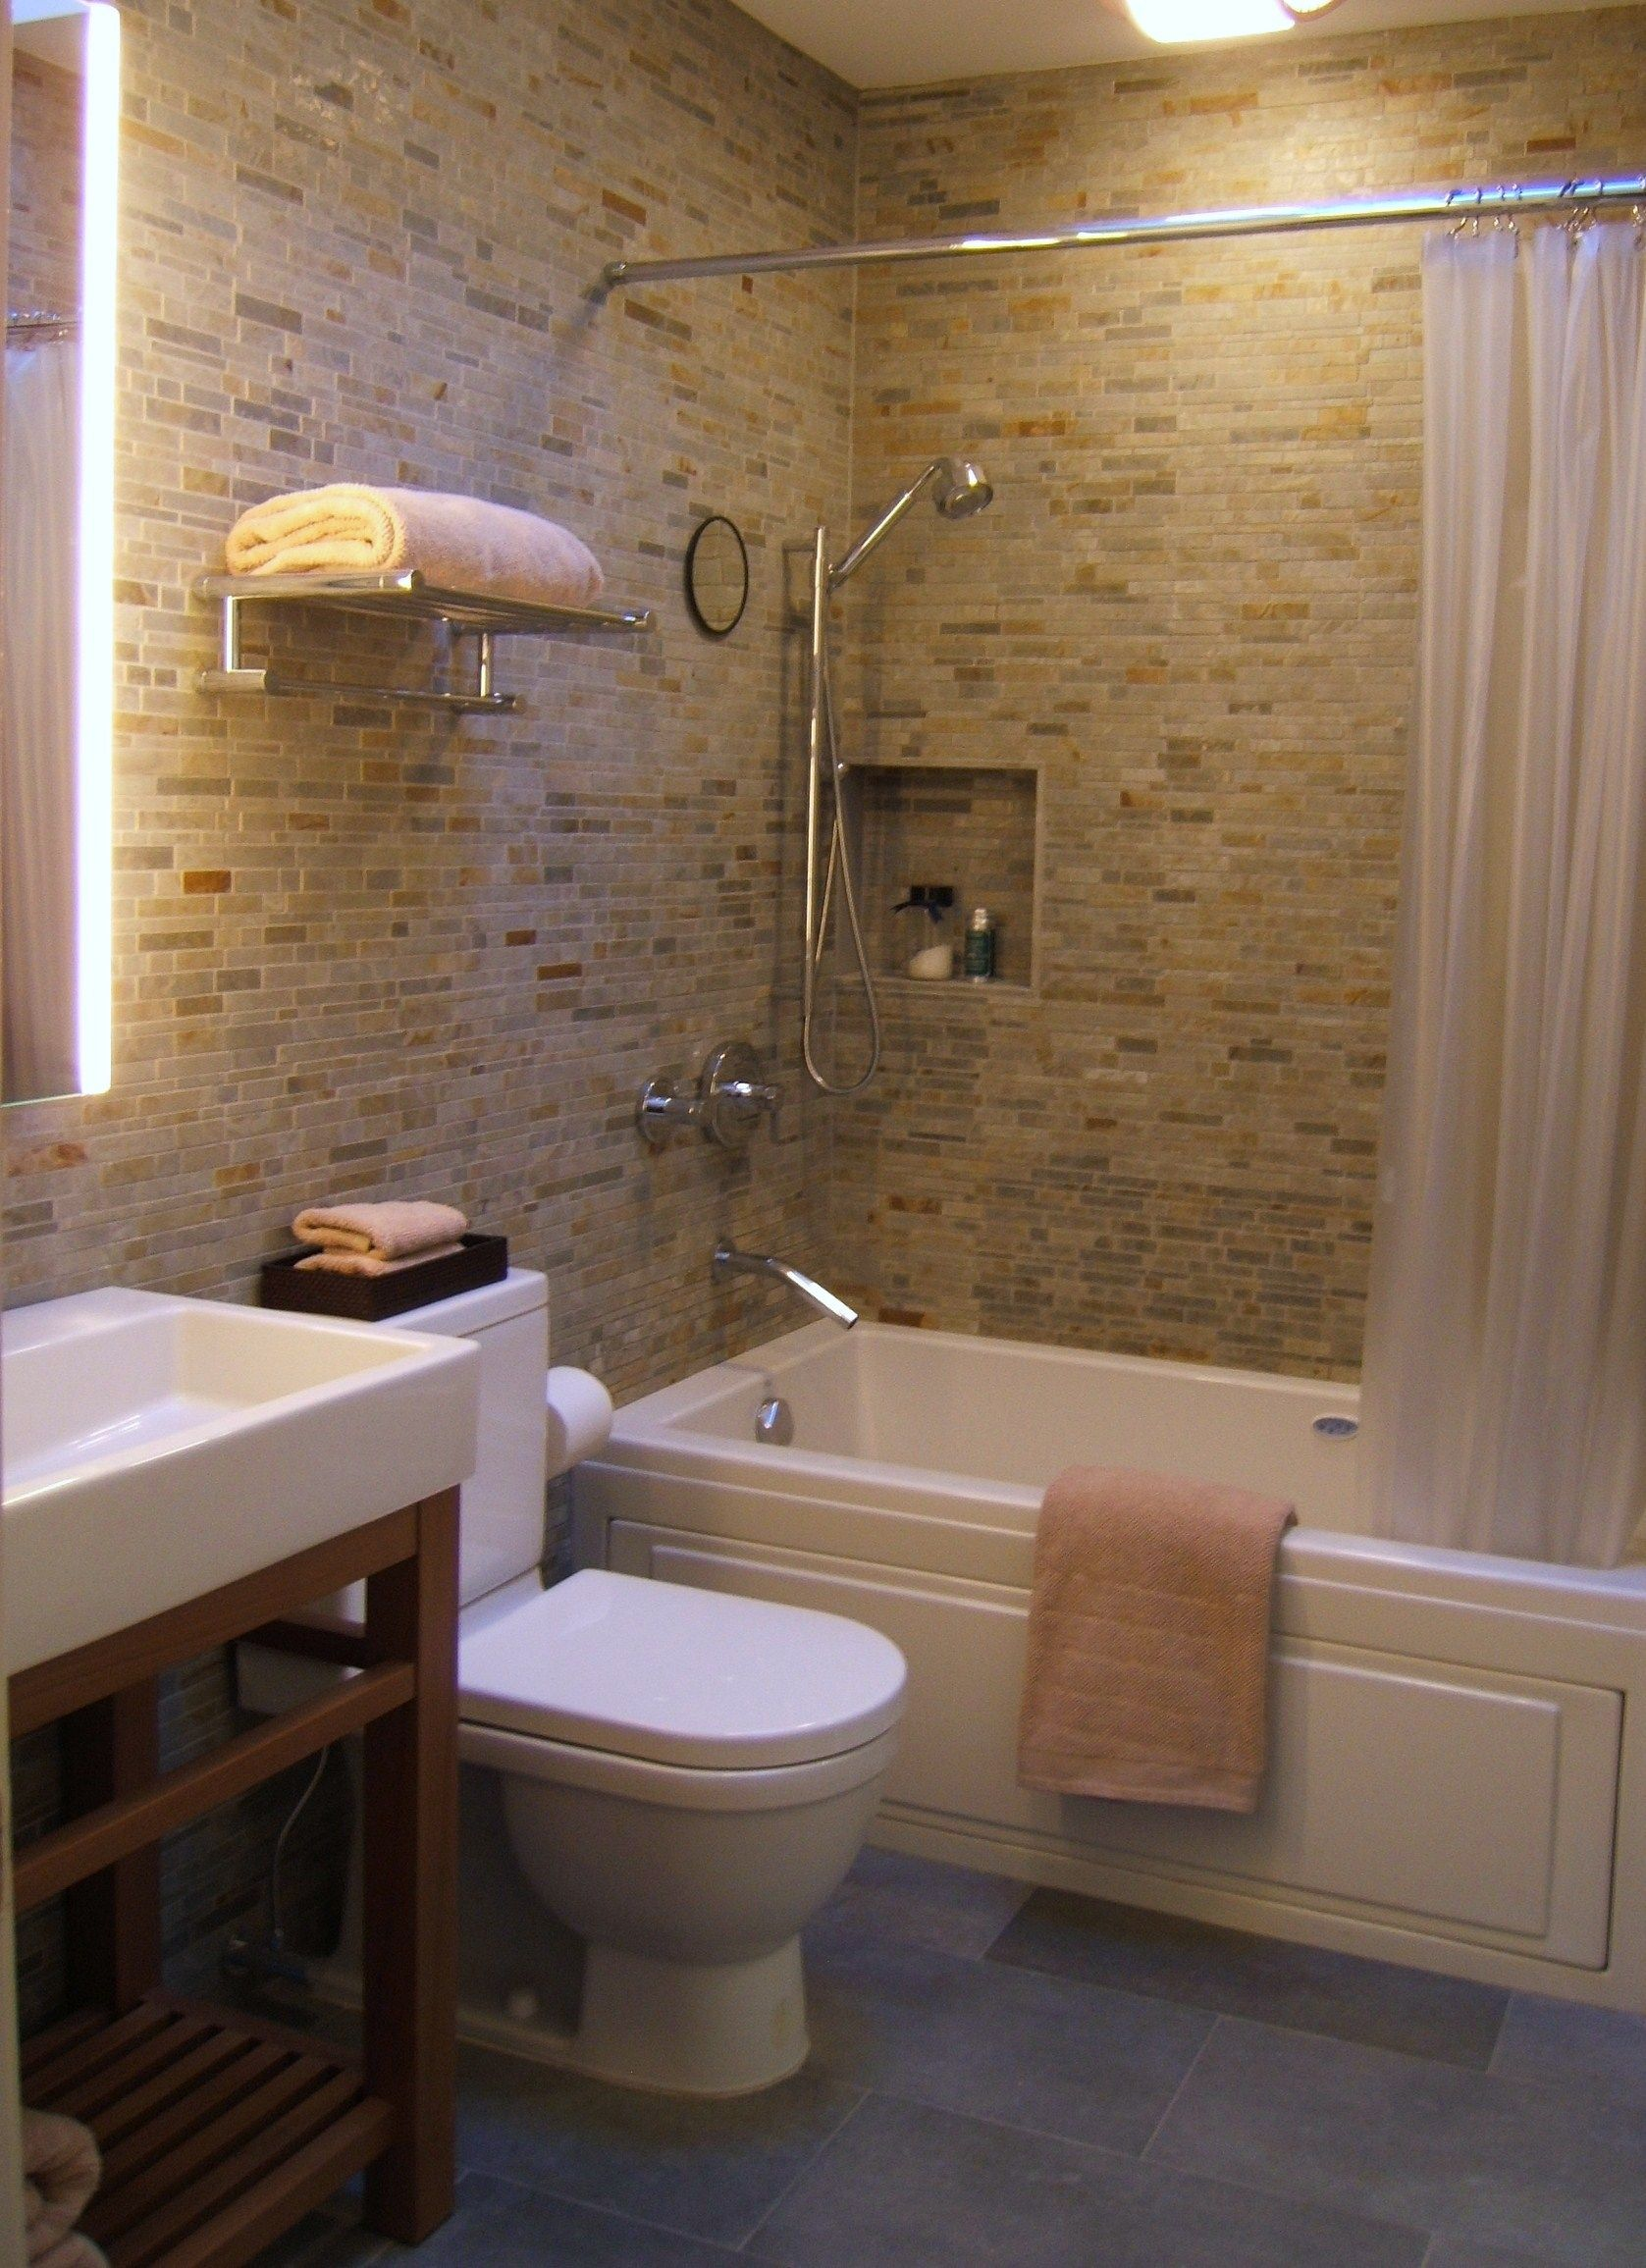 Small bathroom designs south africa small bath pinterest small bathroom designs small Small yacht bathroom design